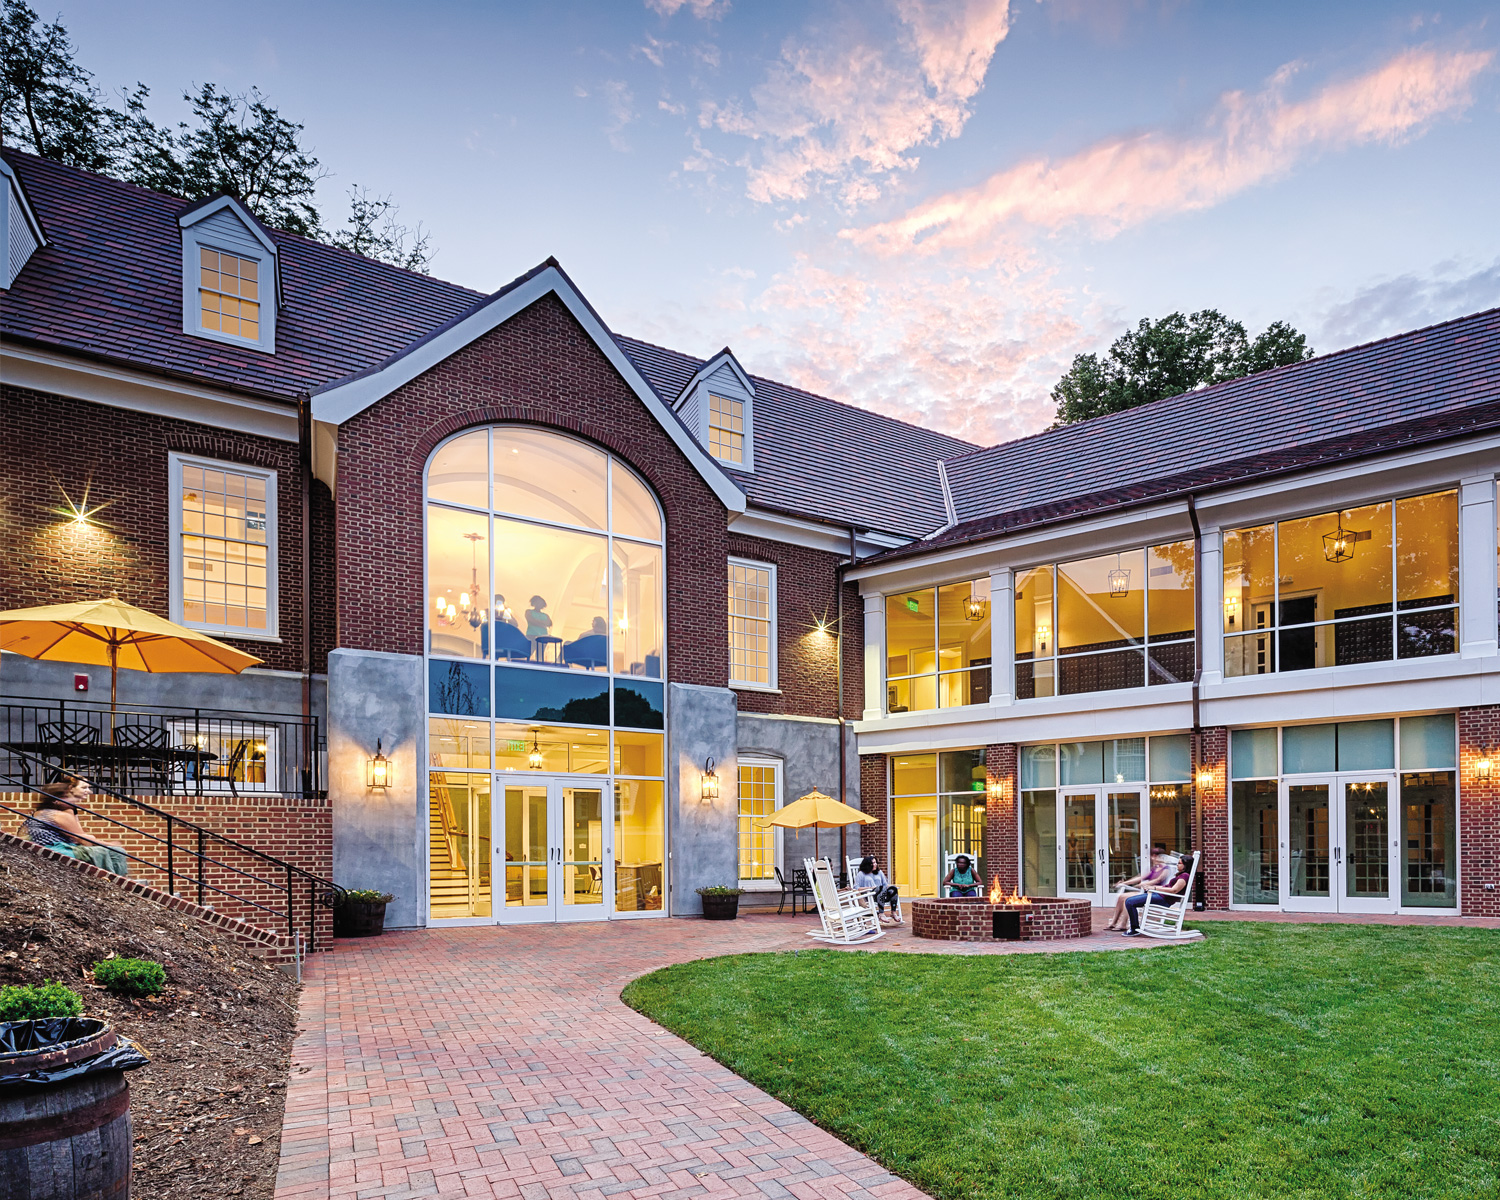 Salem College Blends New Design With Historic Island Of